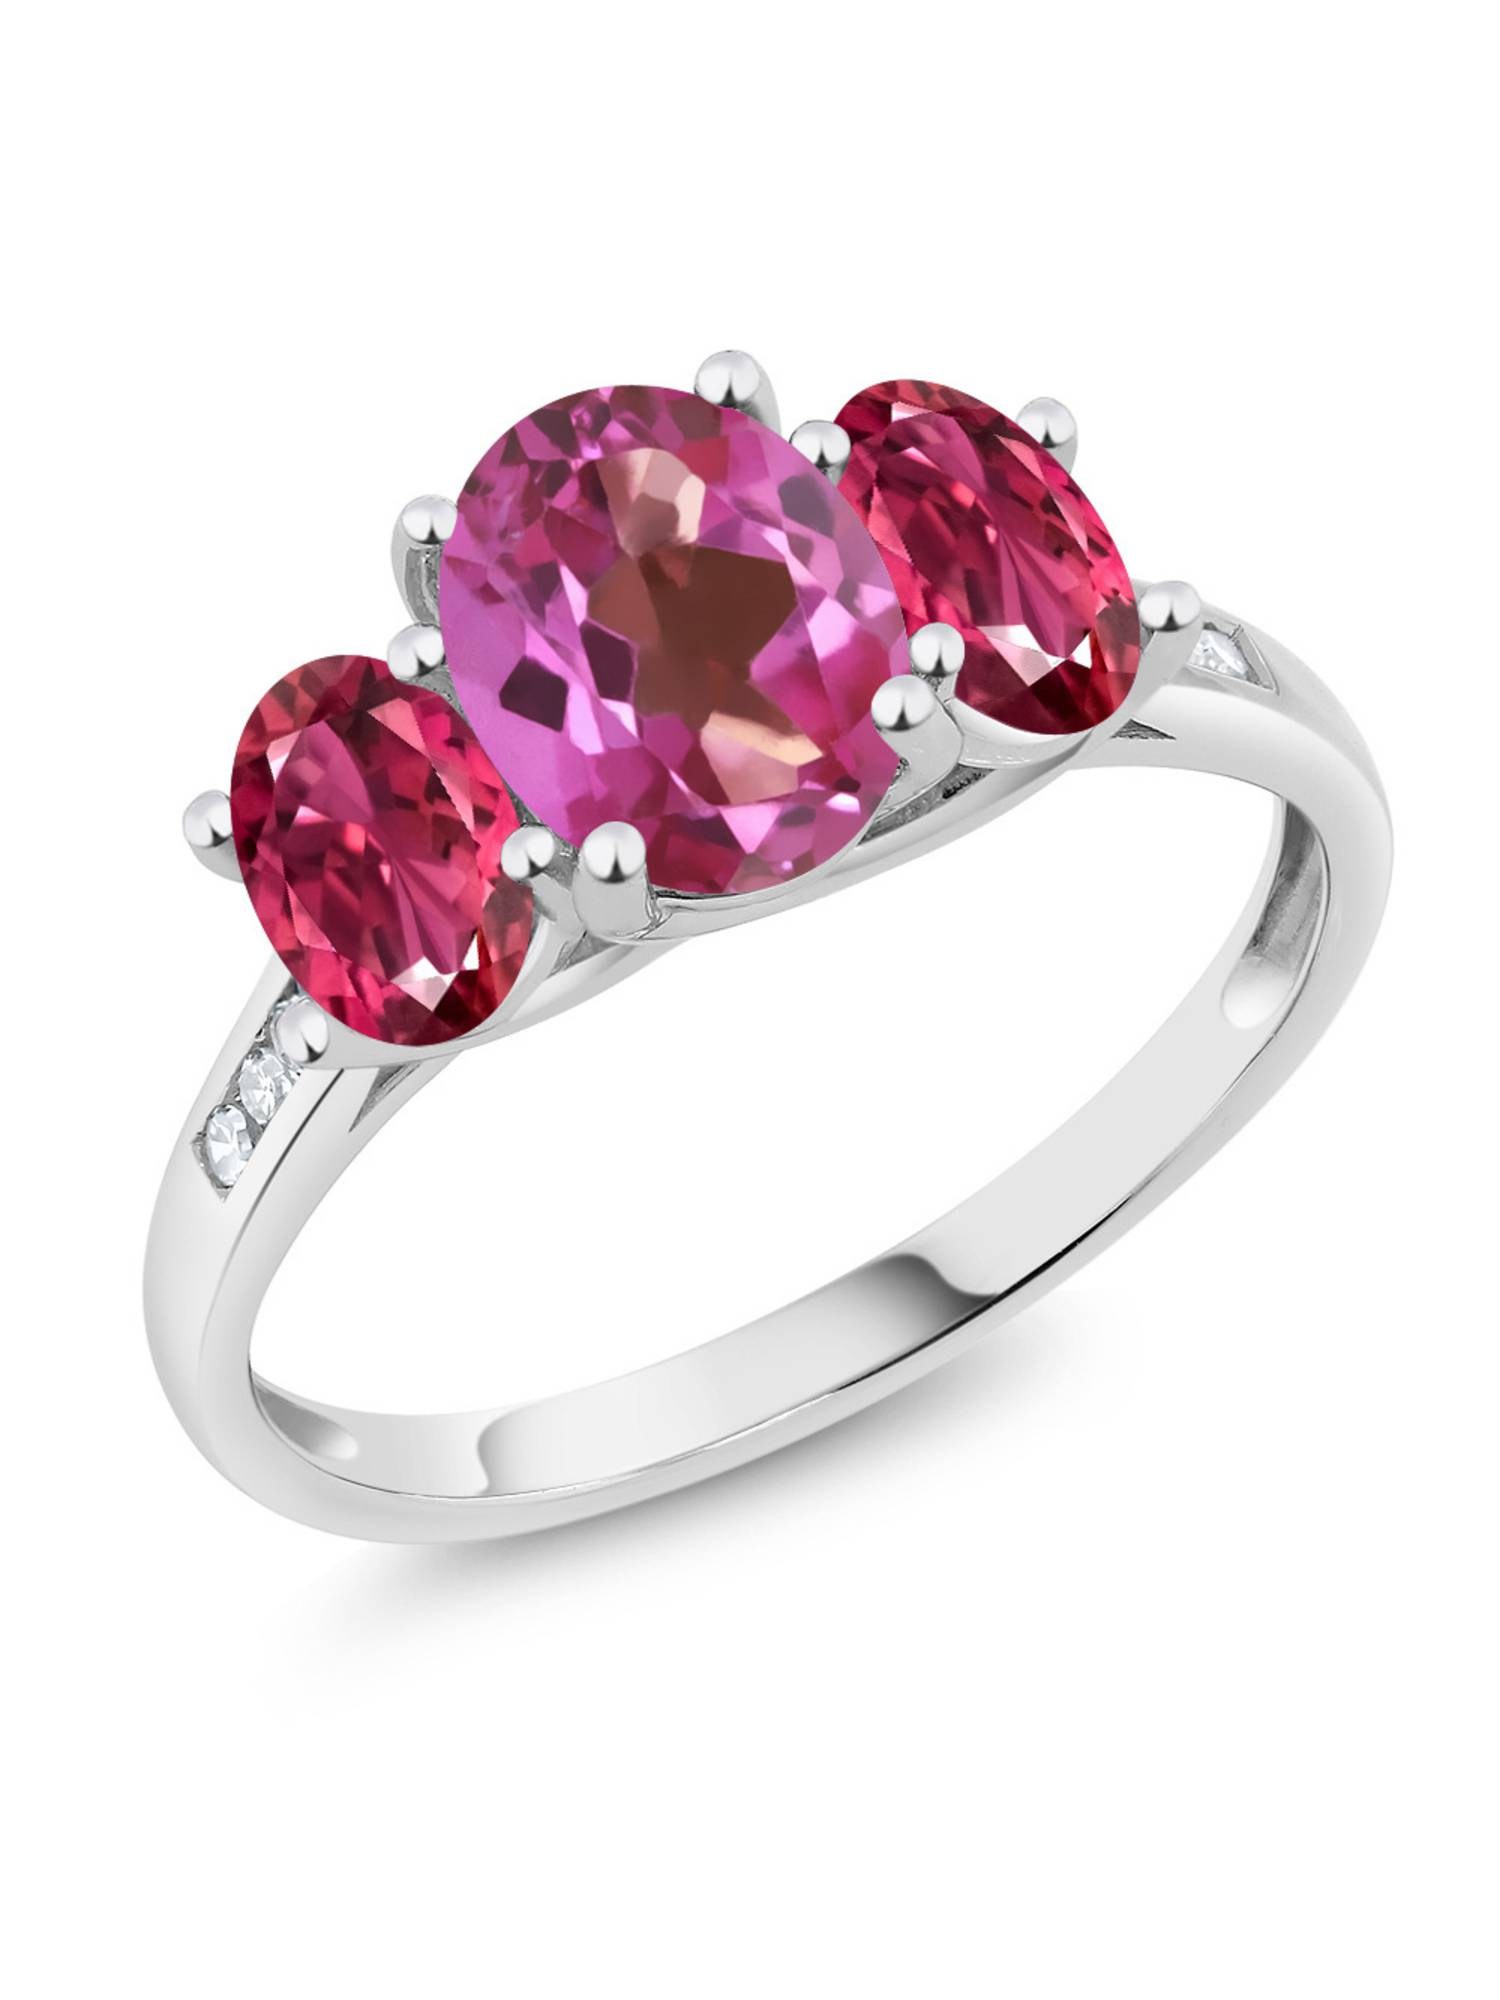 10K White Gold 2.06 Ct Oval Pink Mystic Topaz Pink Tourmaline 3-Stone Ring by